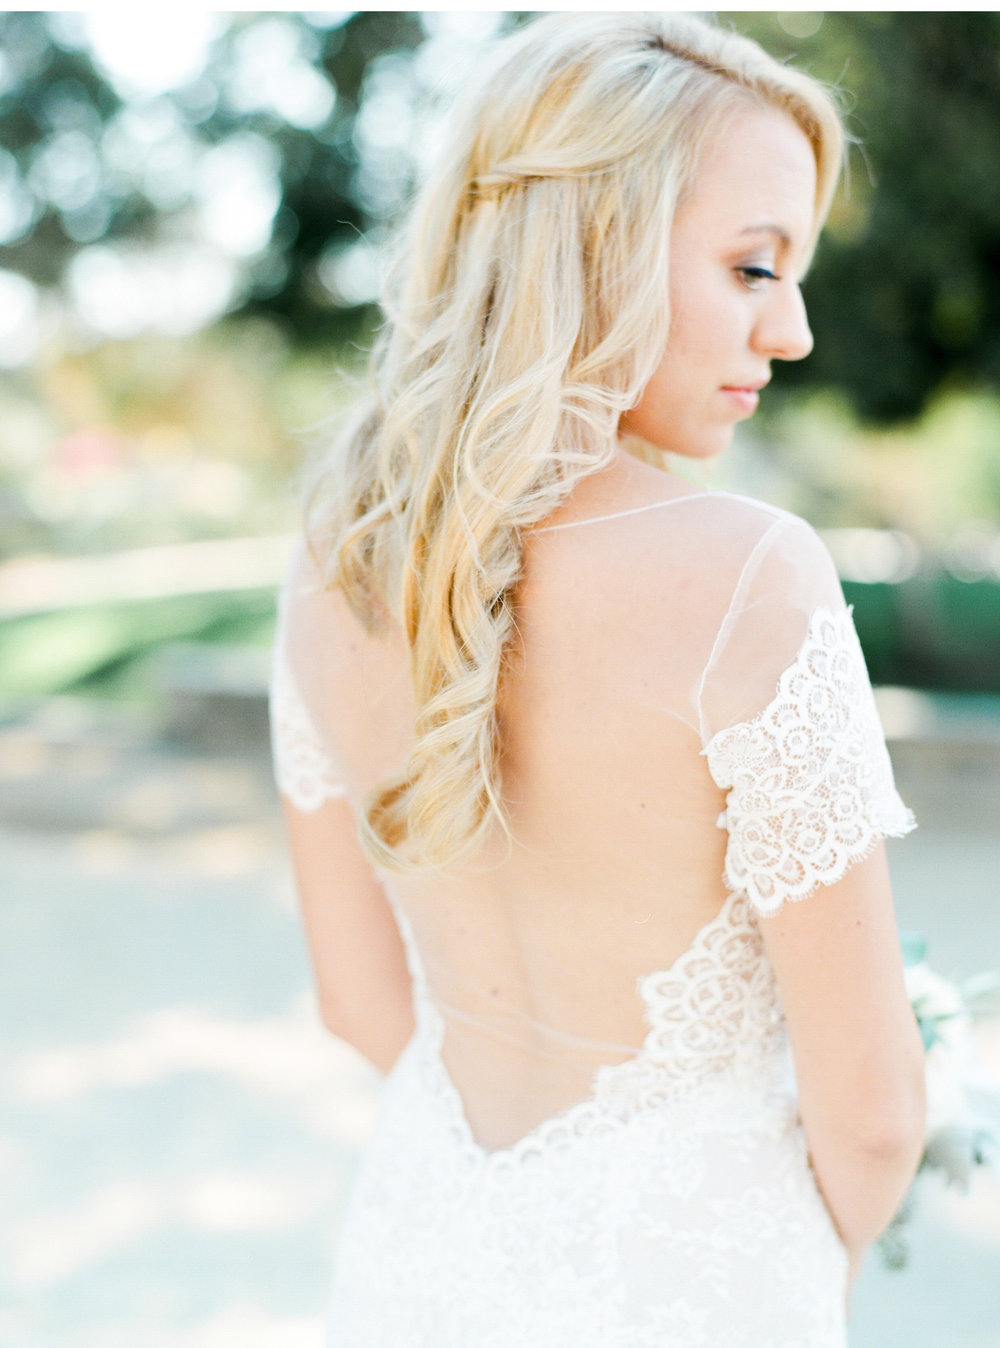 Triunfo-Orange-County-Temecula-Wedding-Photographer-Style-Me-Pretty-Natalie-Schutt-Photography_05.jpg